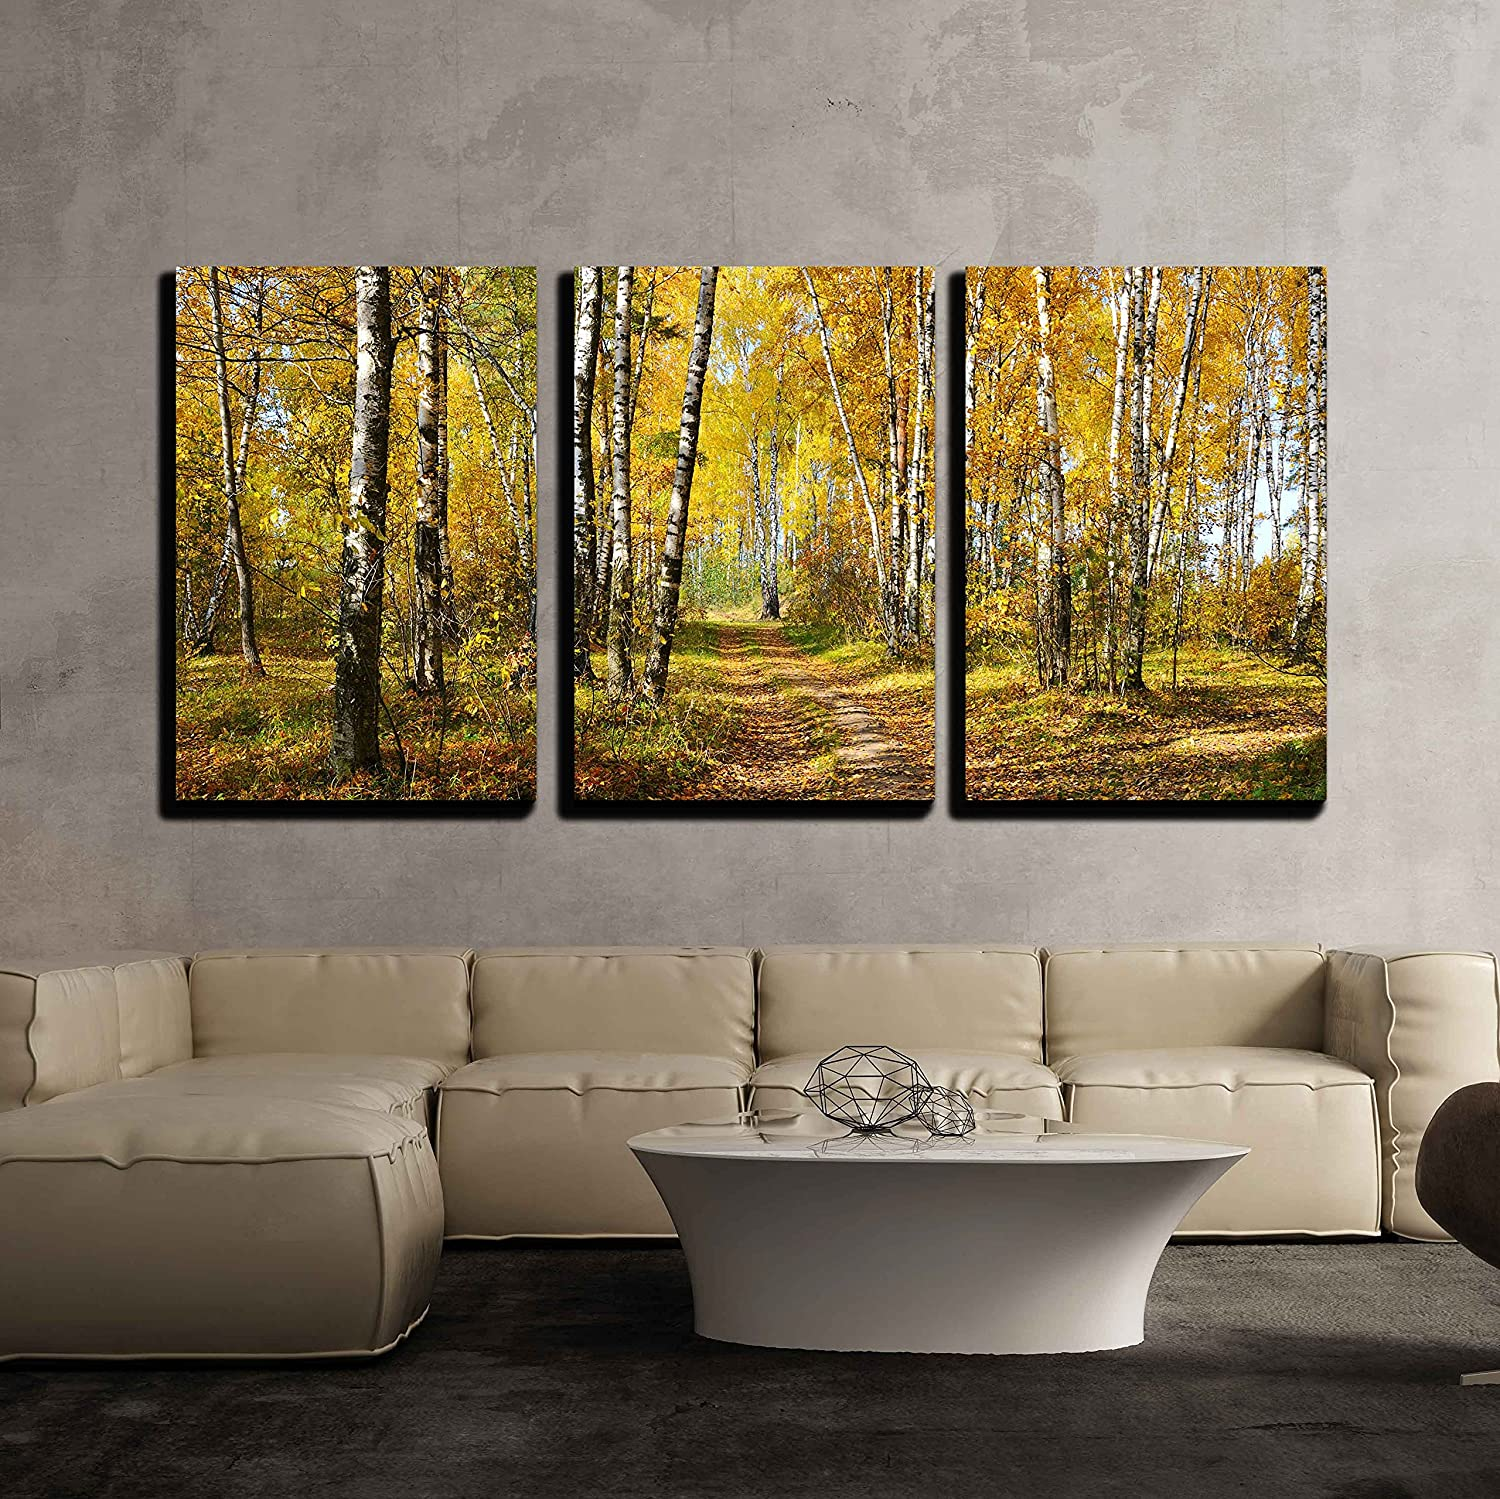 Amazon Com Wall26 3 Piece Canvas Wall Art Birch Grove In Autumn Forest Modern Home Art Stretched And Framed Ready To Hang 16 X24 X3 Panels Posters Prints